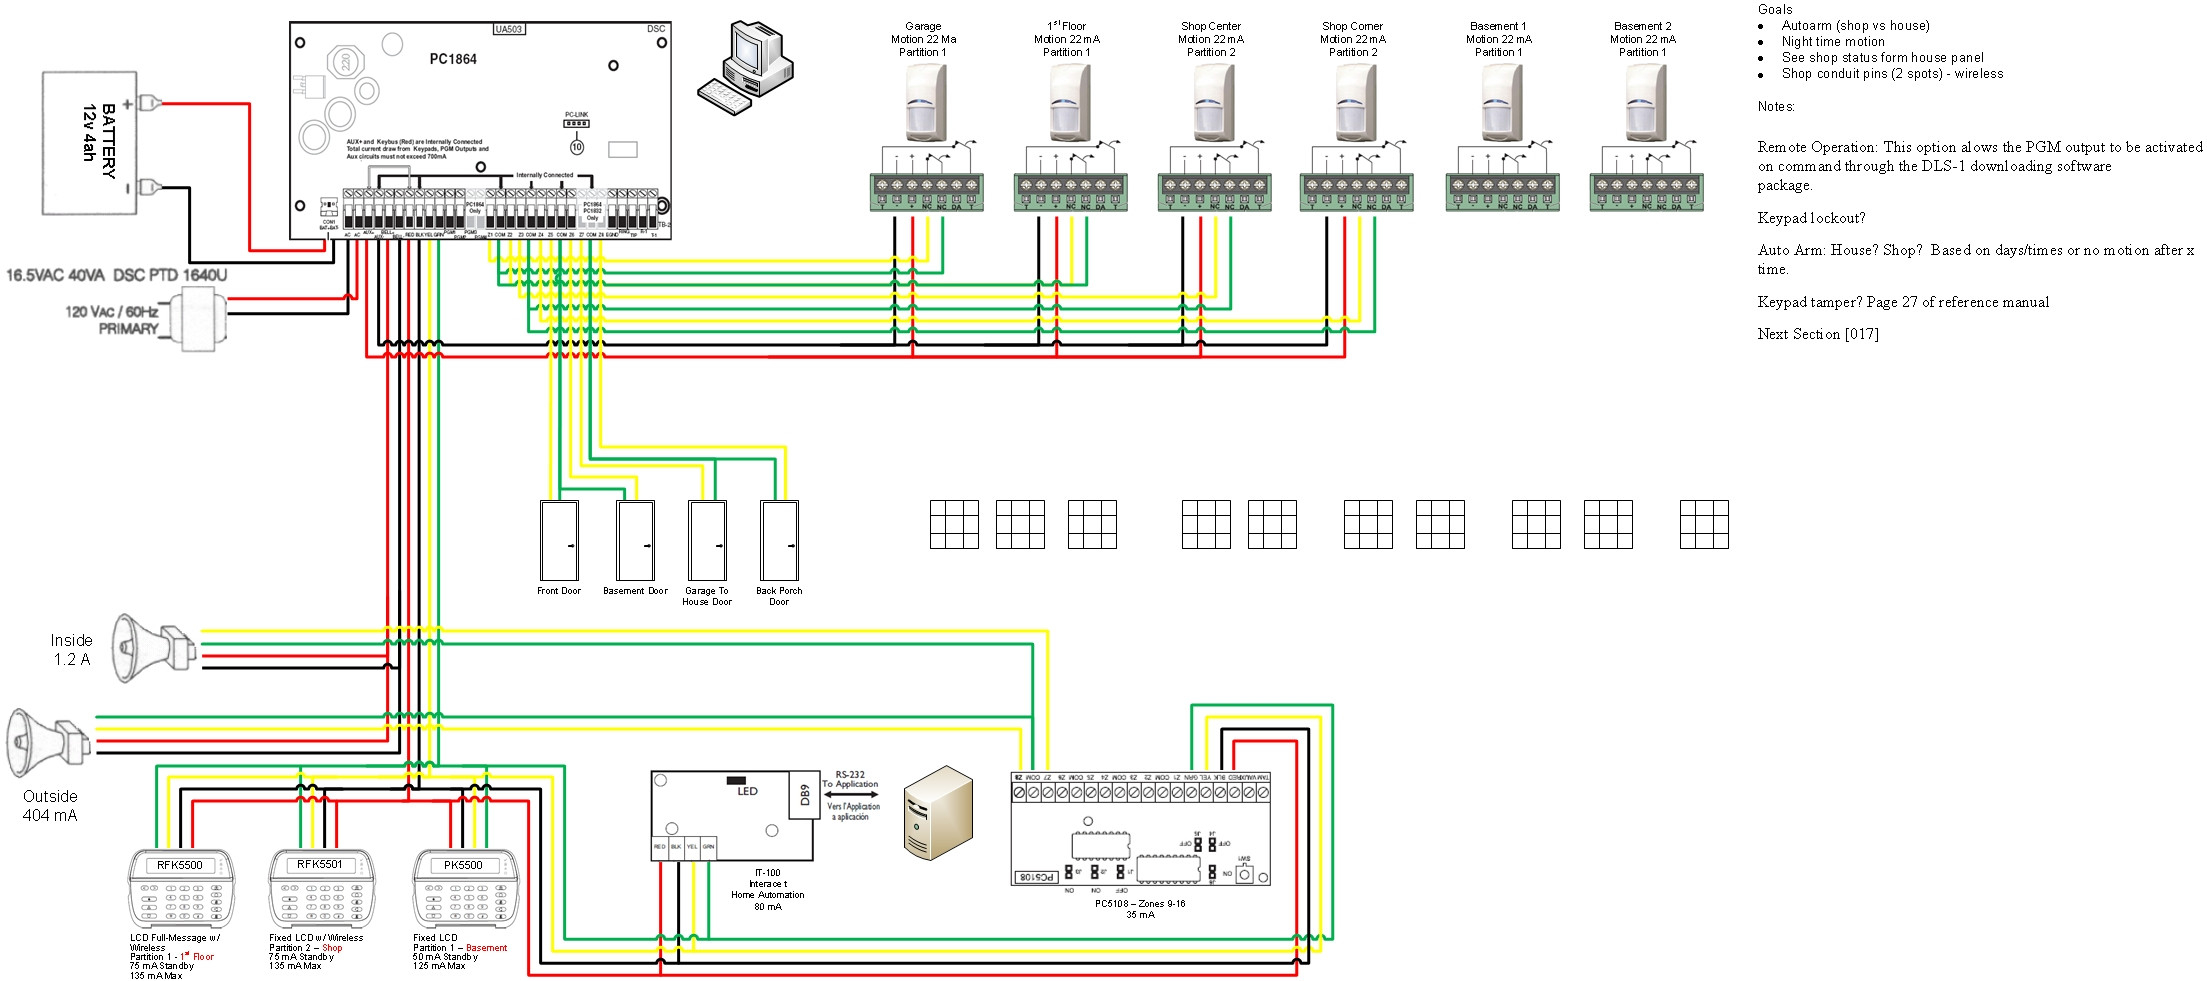 home security system wiring diagram Download-Security Alarm System Wiring Diagram Save Amazing Home Alarm System Wiring Diagram Ornament Electrical 14-f